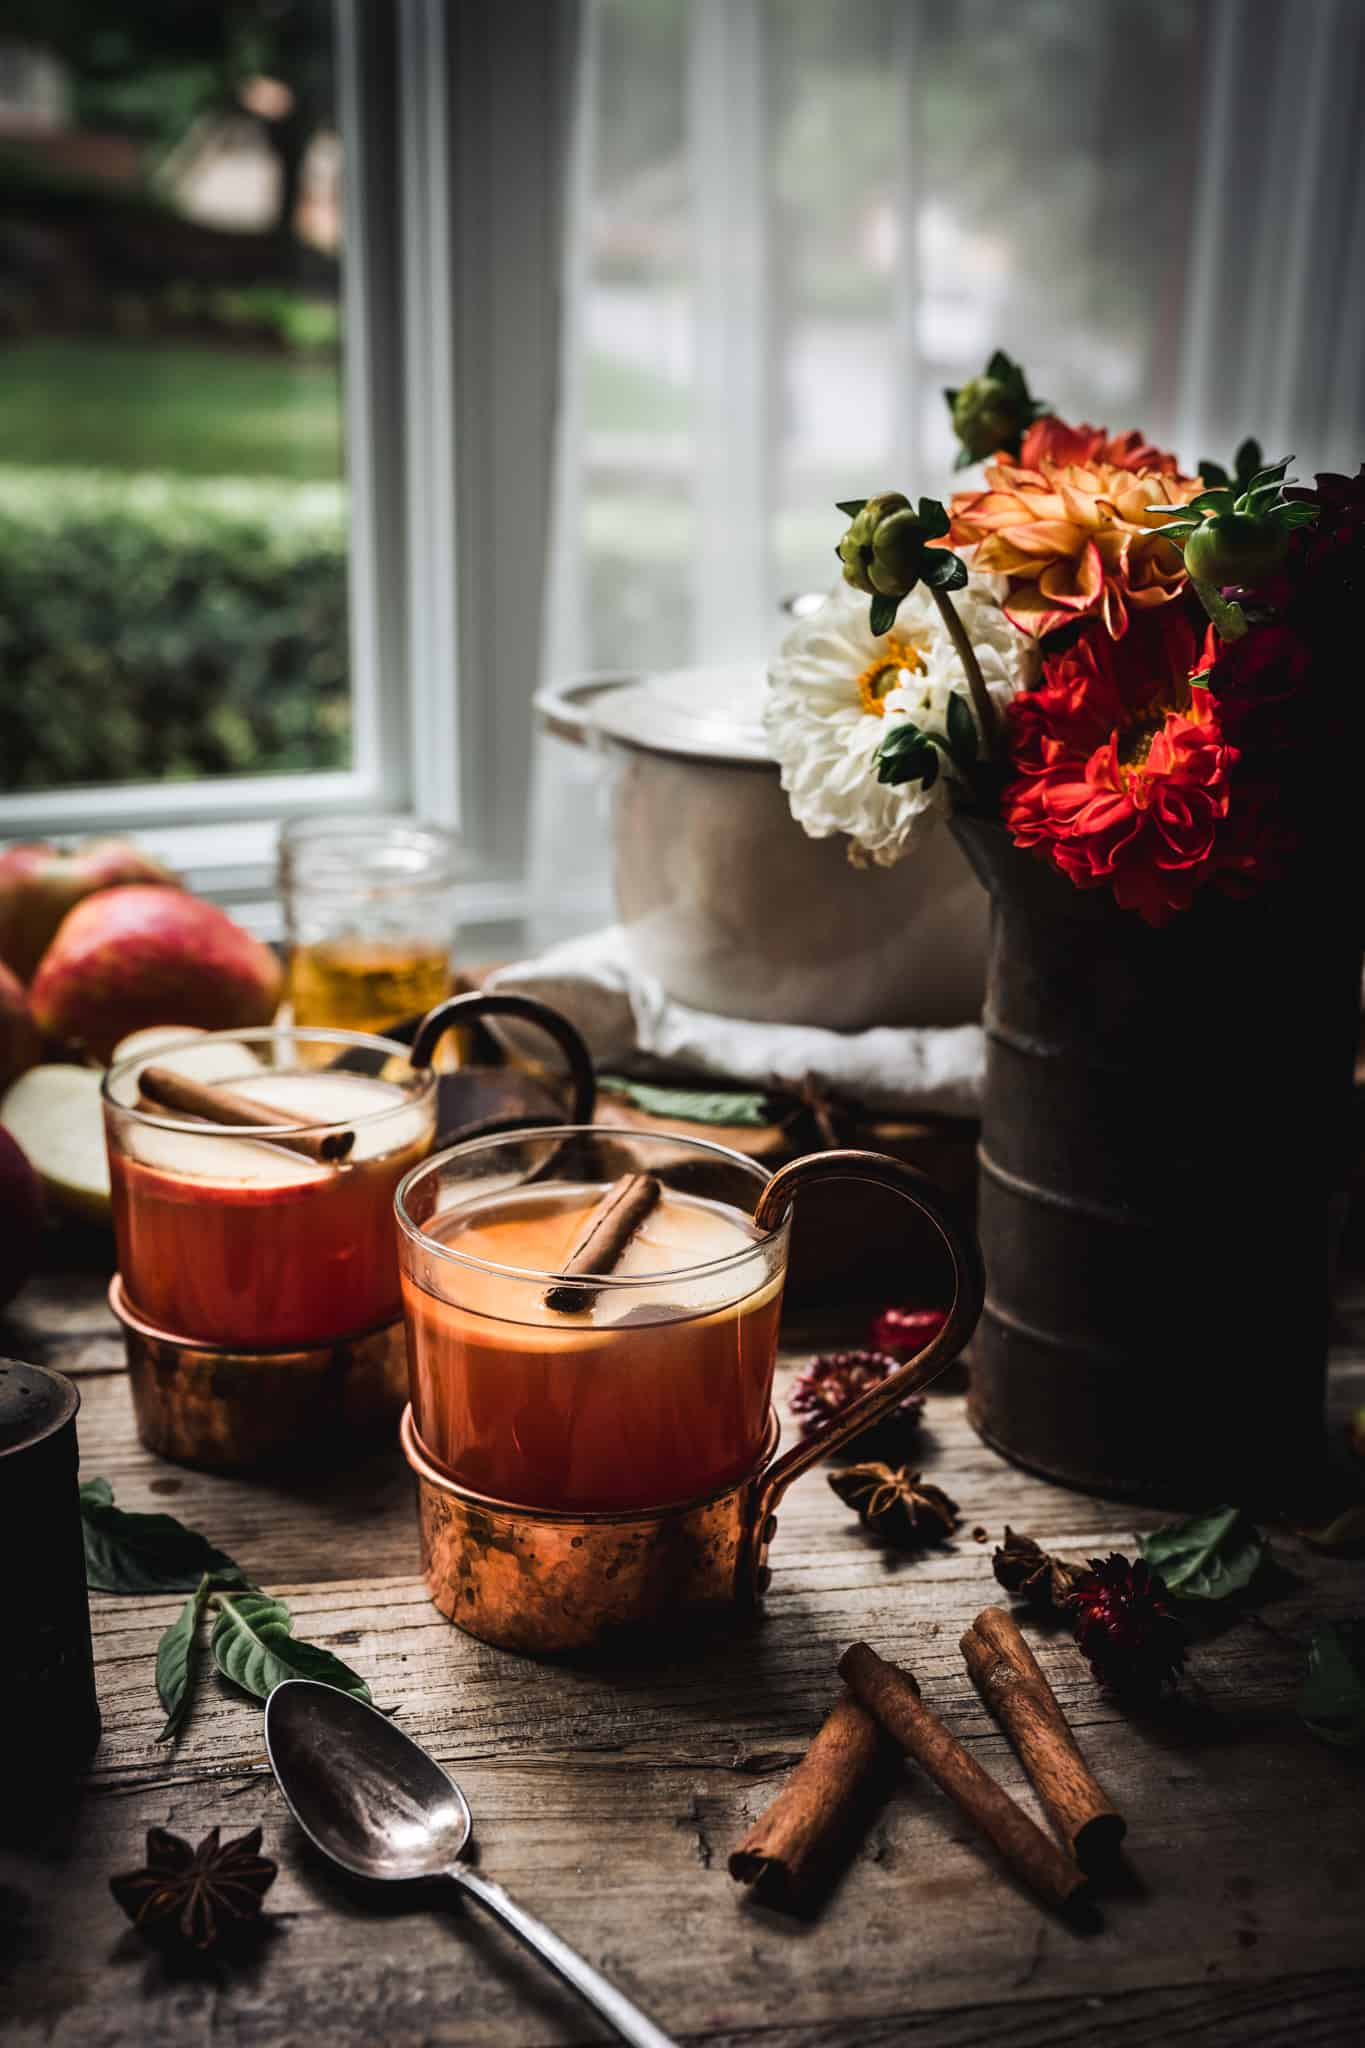 backlit side view of hot apple cider brandy cocktails with beautiful fall flowers